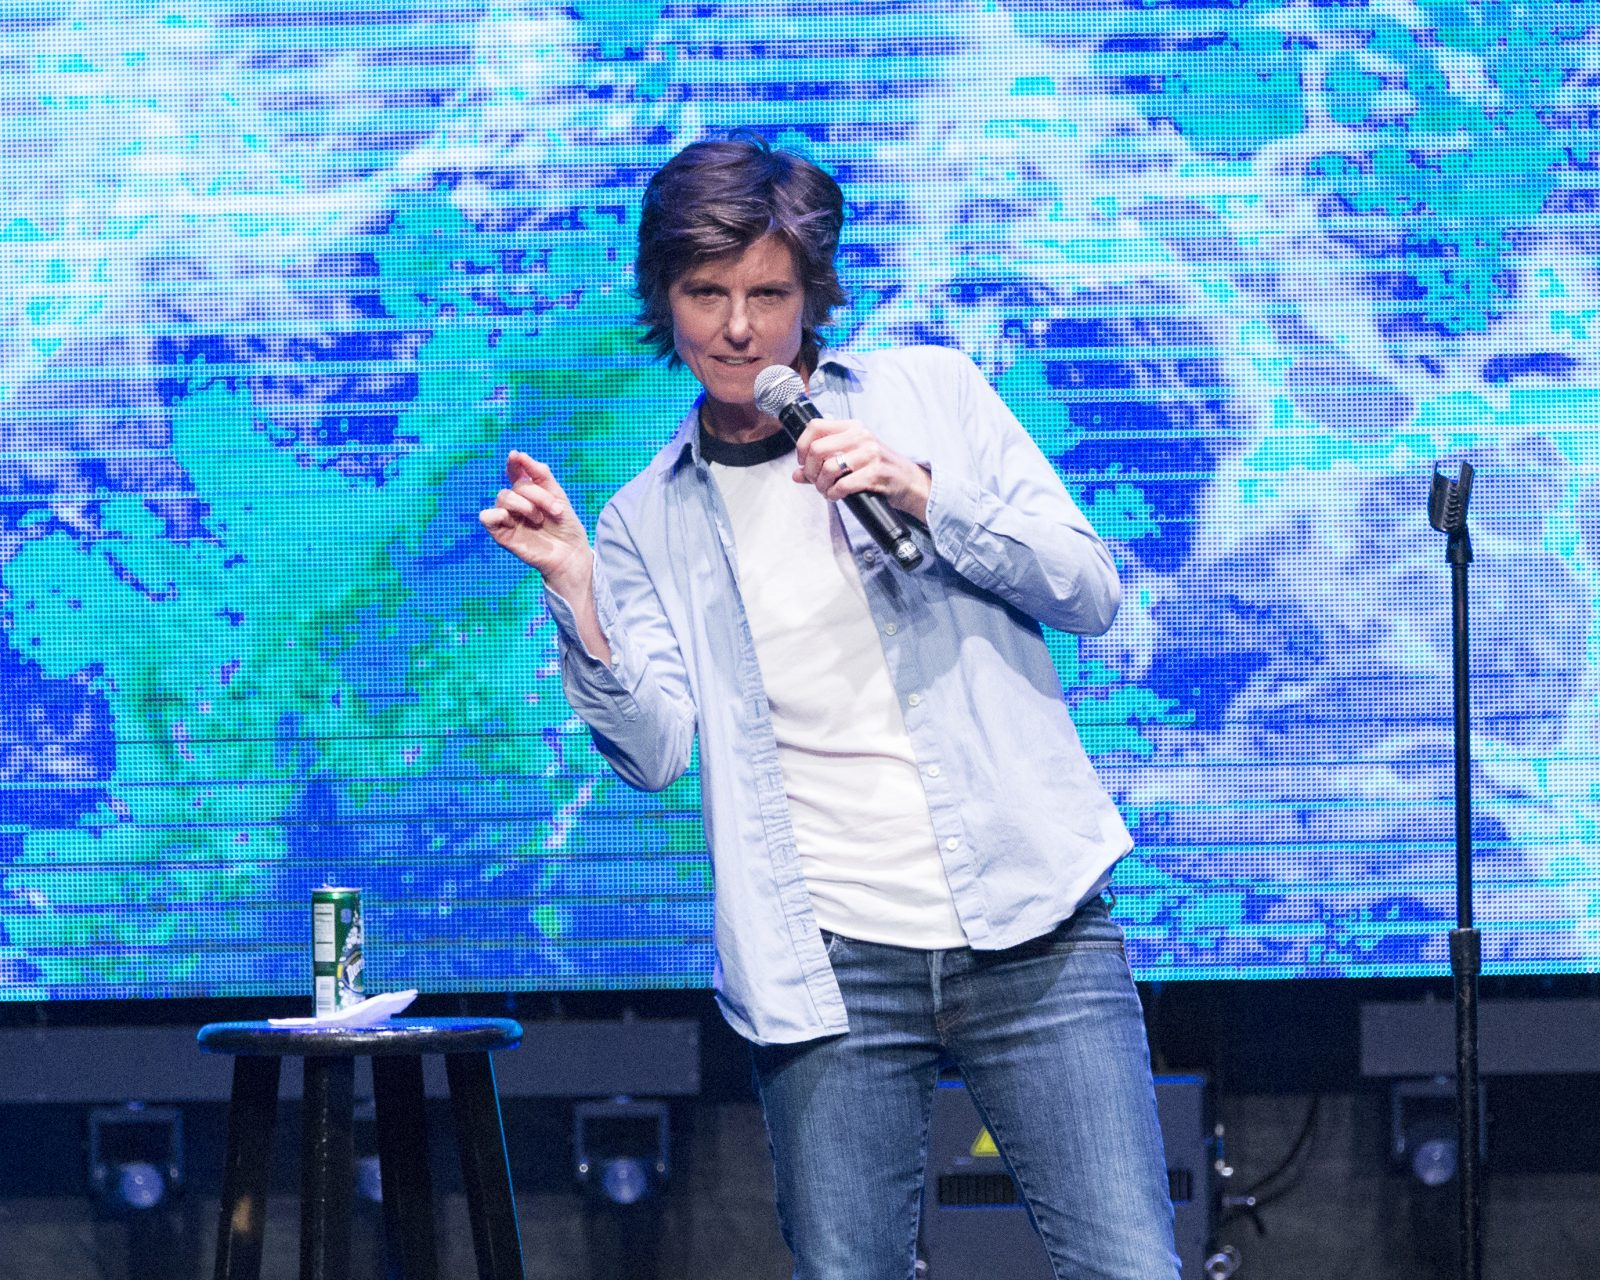 Tig Notaro will perform Feb. 3 at the Tralf Music Hall.   (Getty Images)